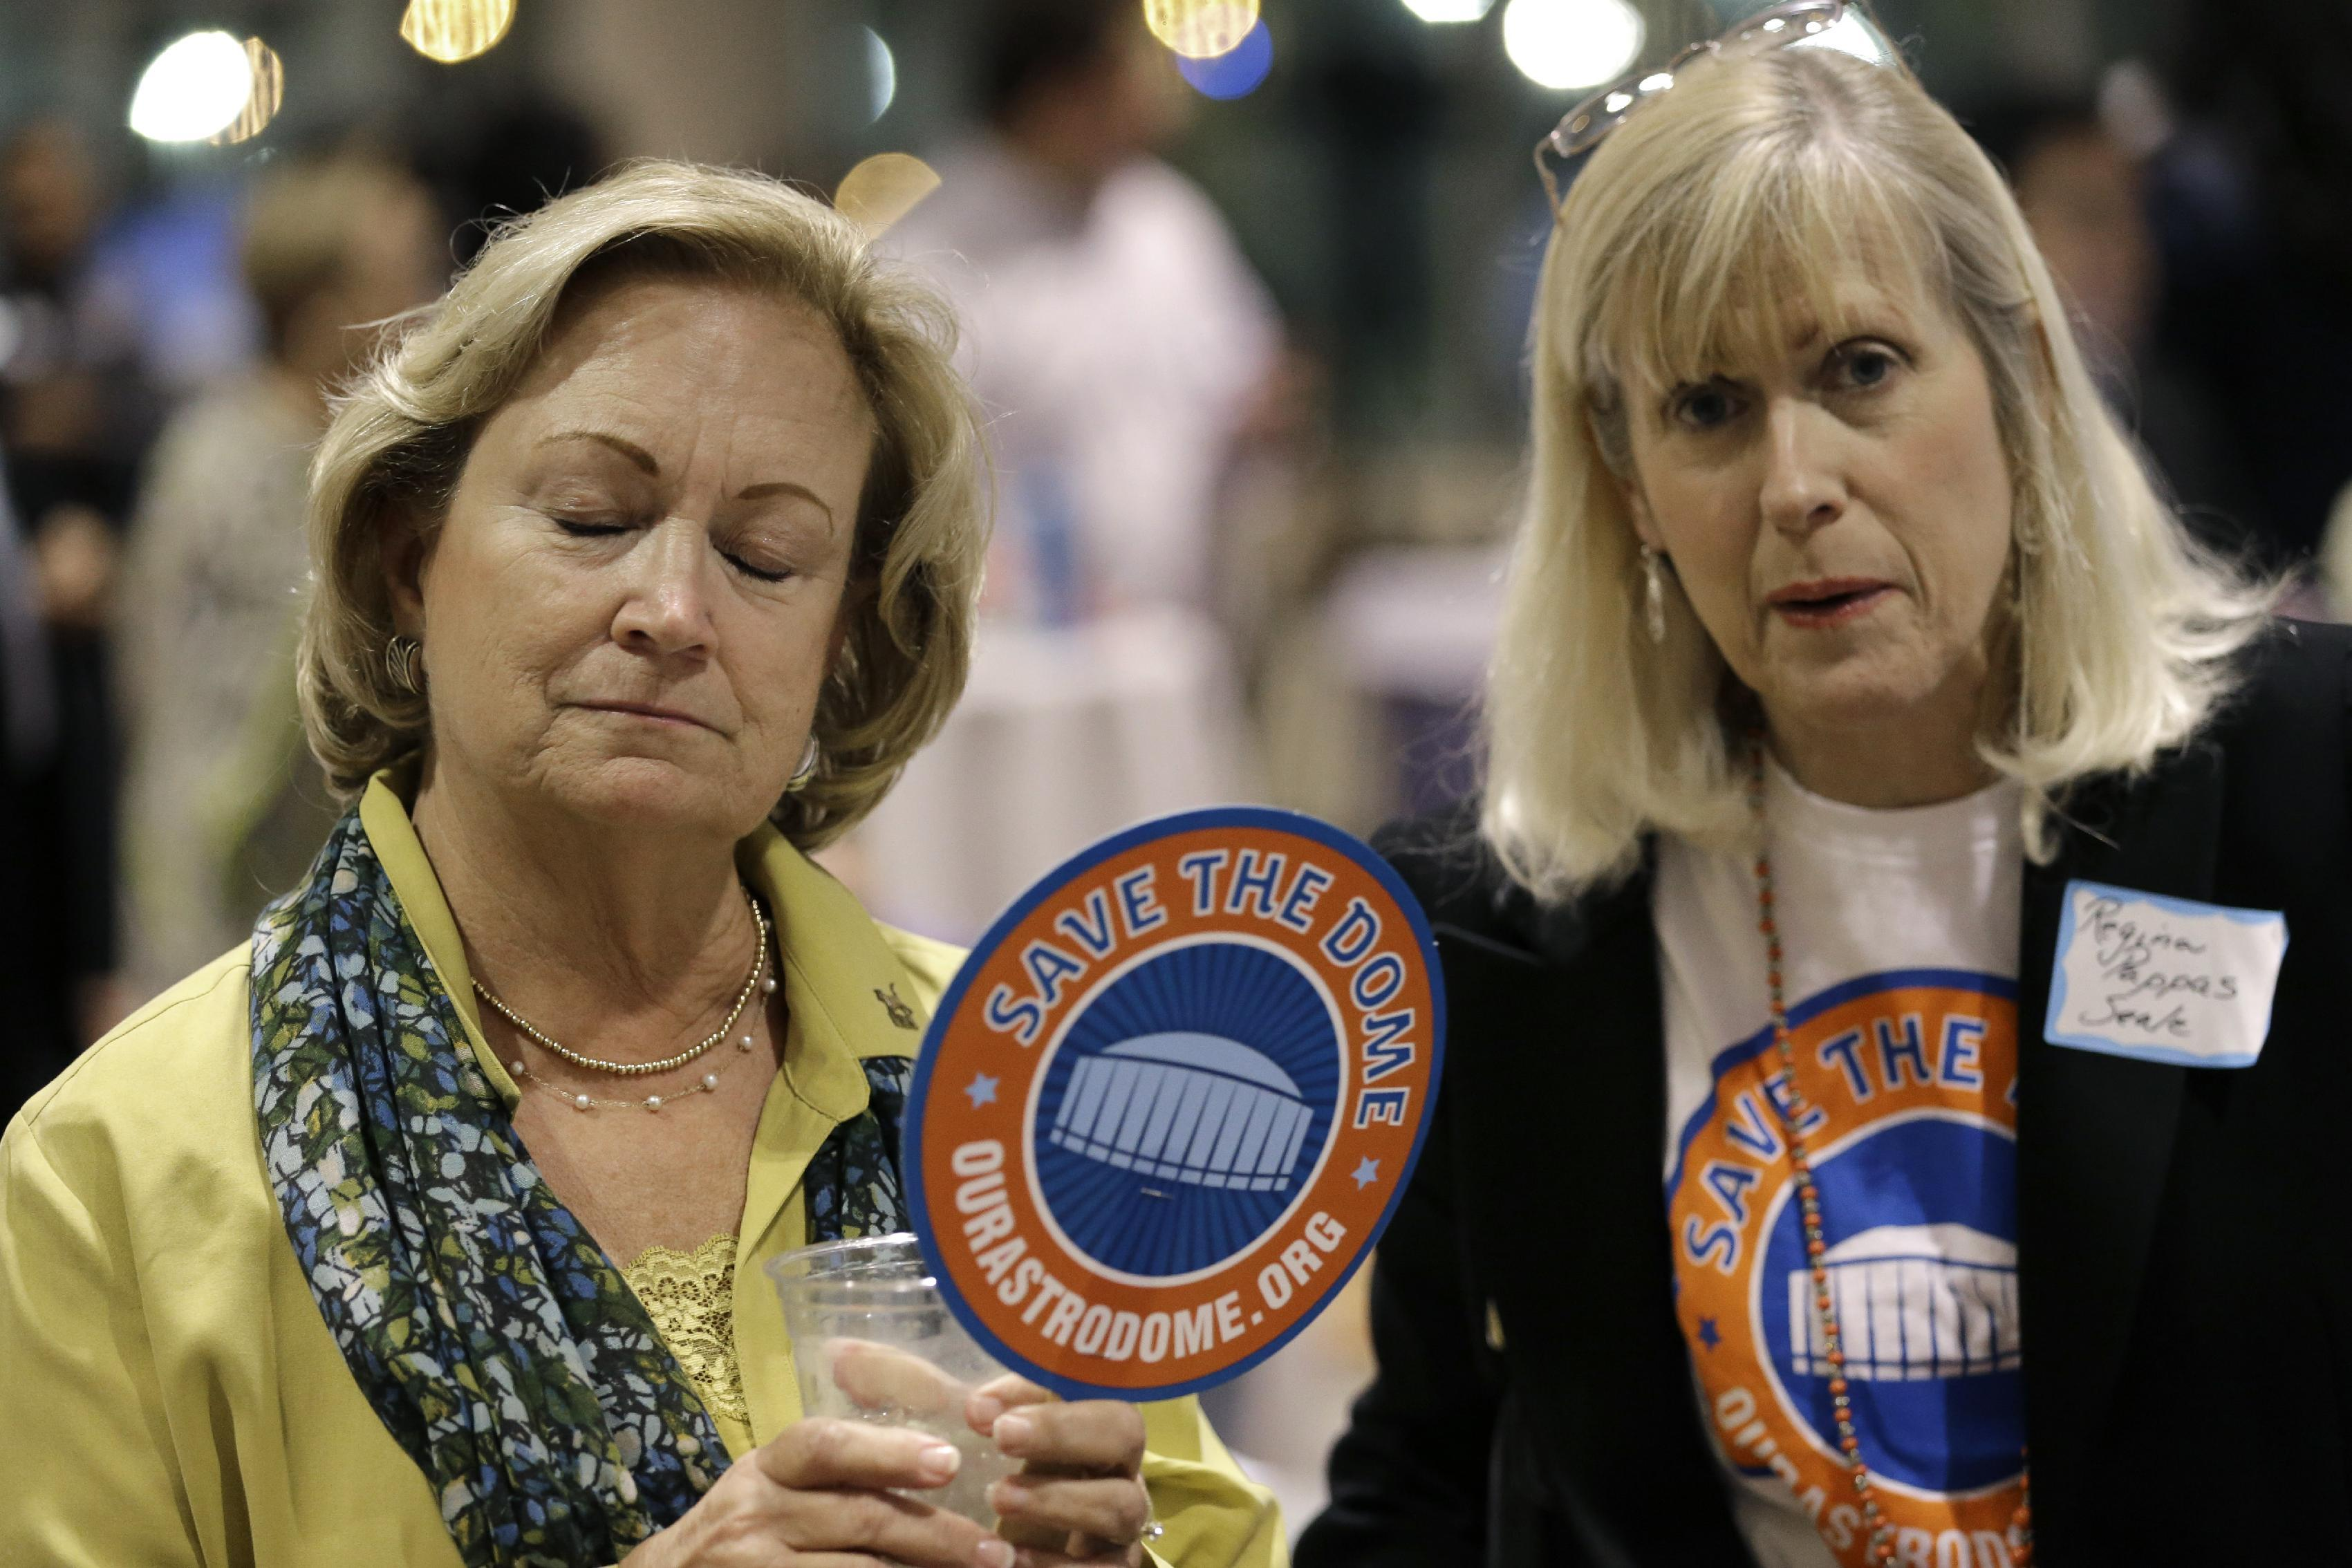 Sally Allen, left, talks with Regina Pappas Seale, right, Tuesday, Nov. 5, 2013, in Houston. Houston-area voters are deciding whether to convert the Astrodome into a convention center or allow the iconic stadium to be demolished.(AP Photo/David J. Phillip)